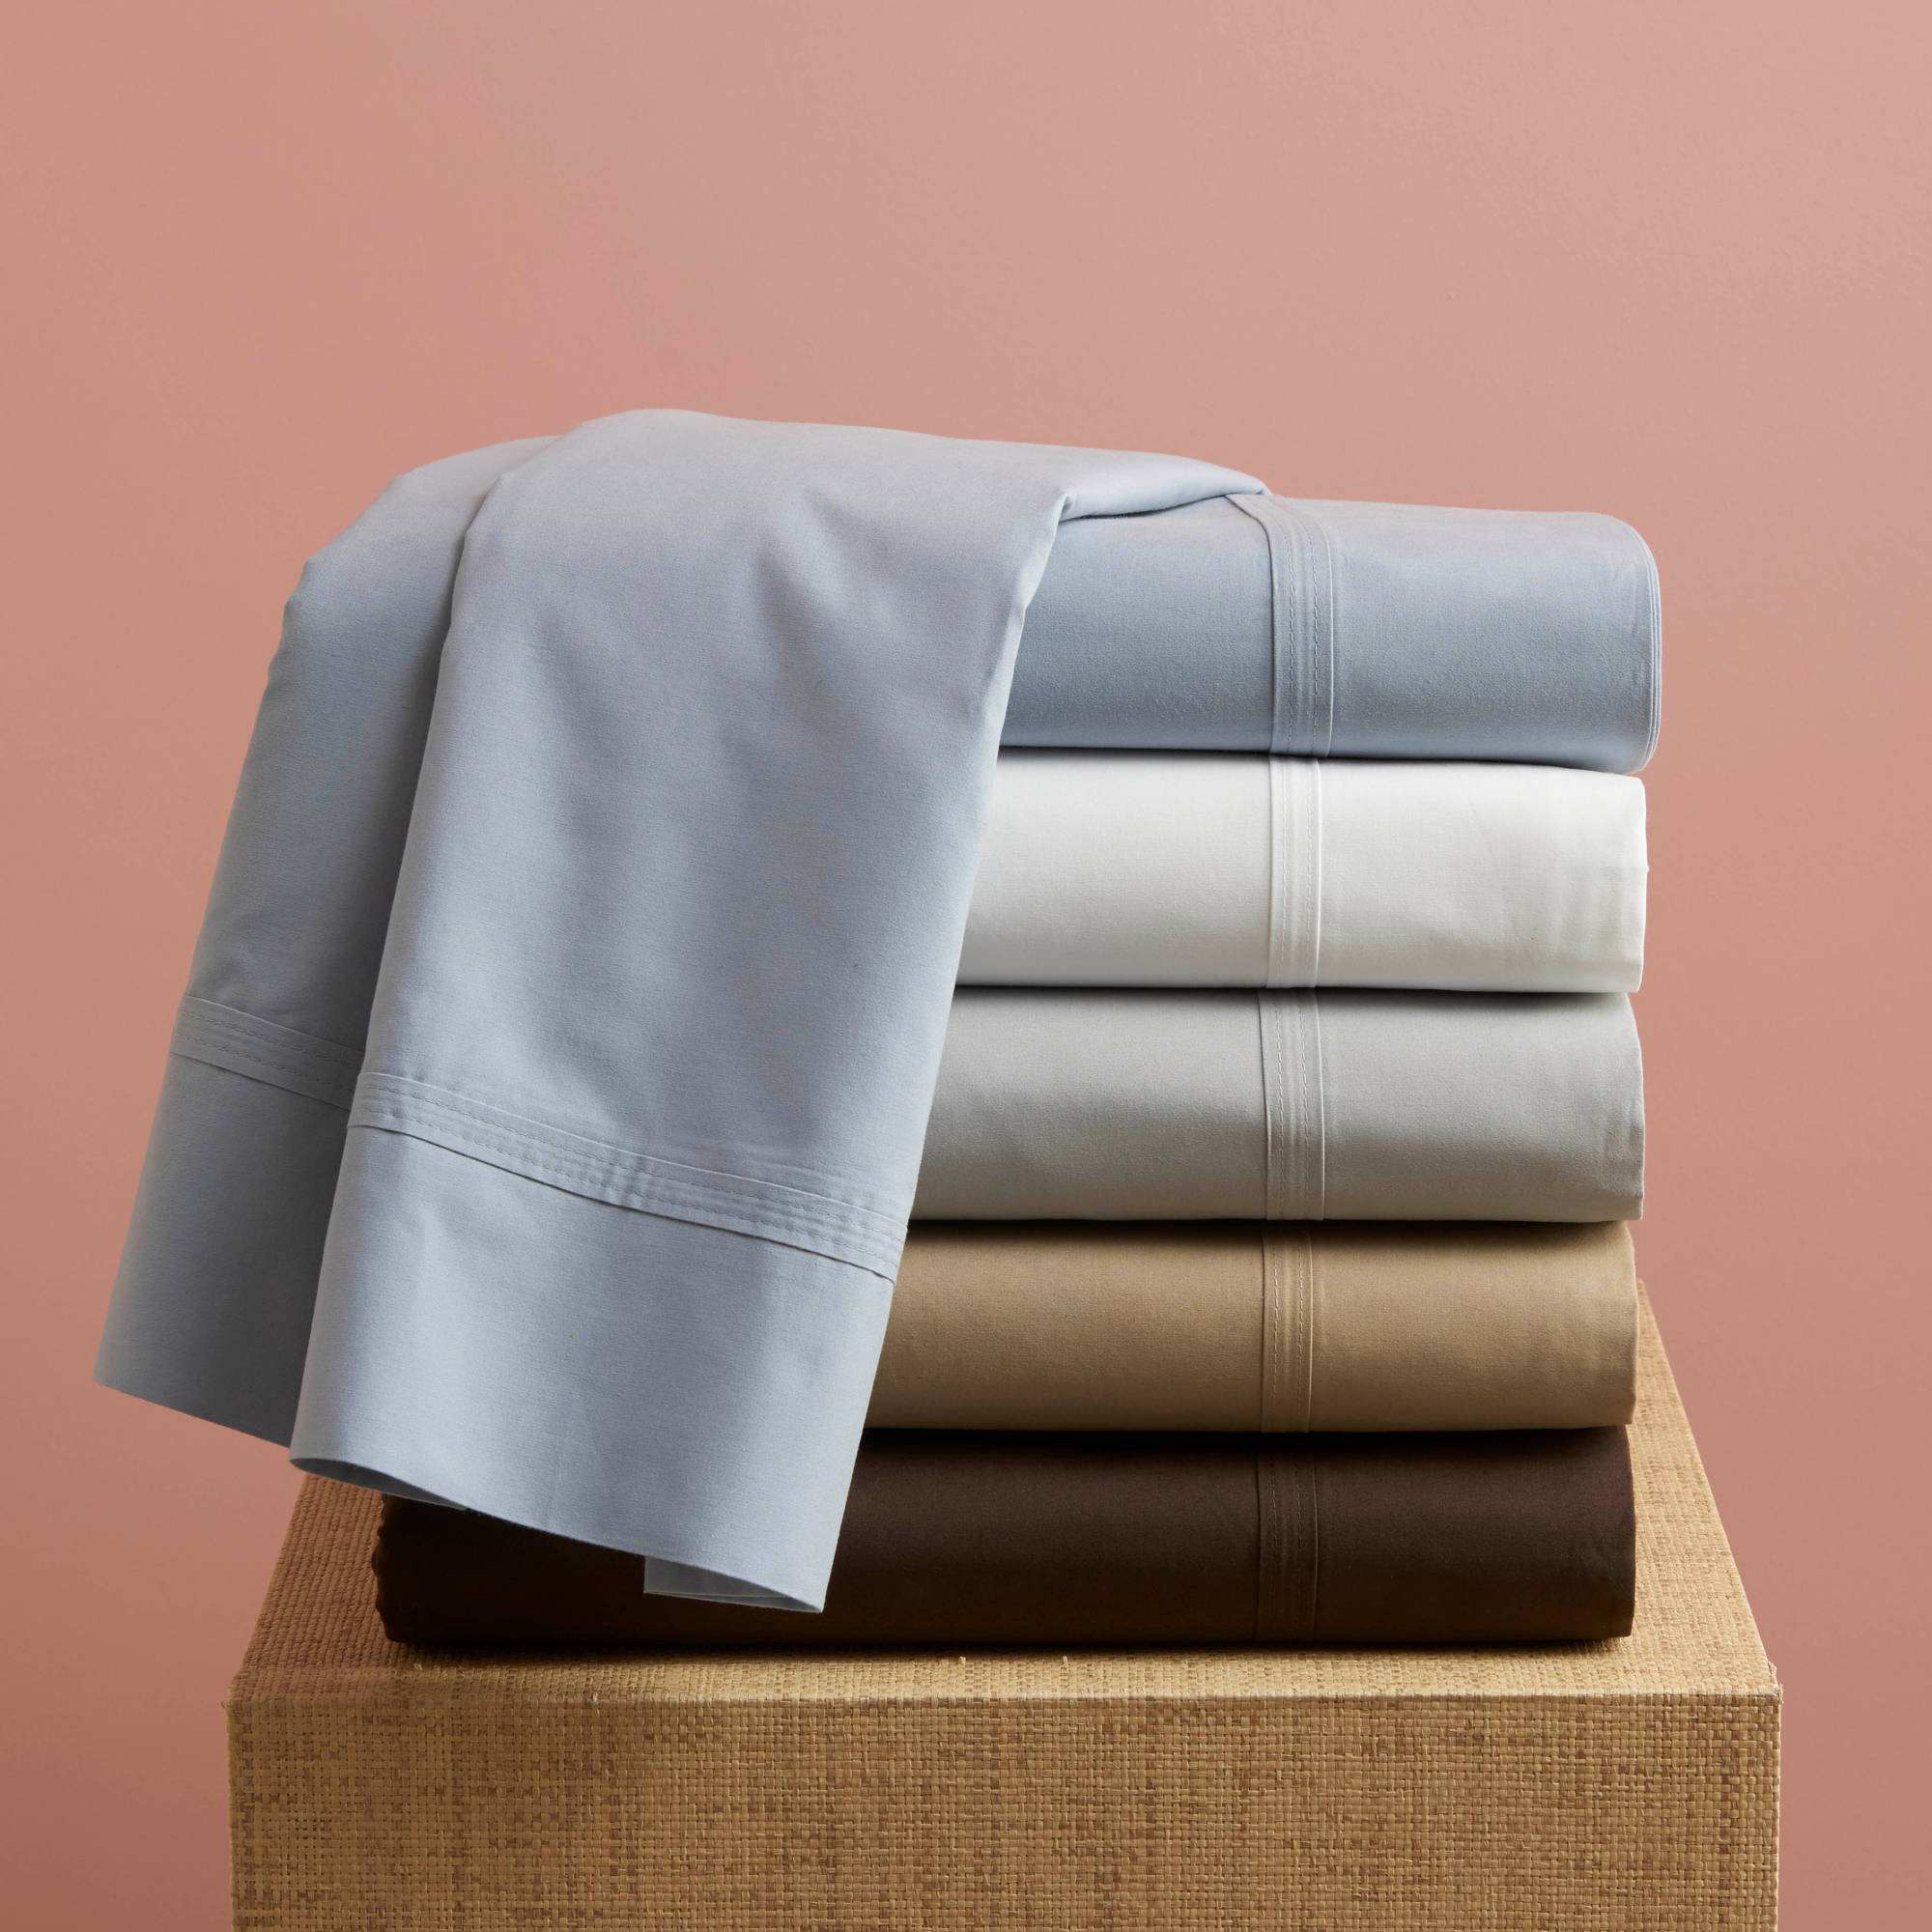 better homes and gardens sheets. Better Homes And Gardens 350 Thread Count Hygro Cotton Percale Sheet Set Sheets E